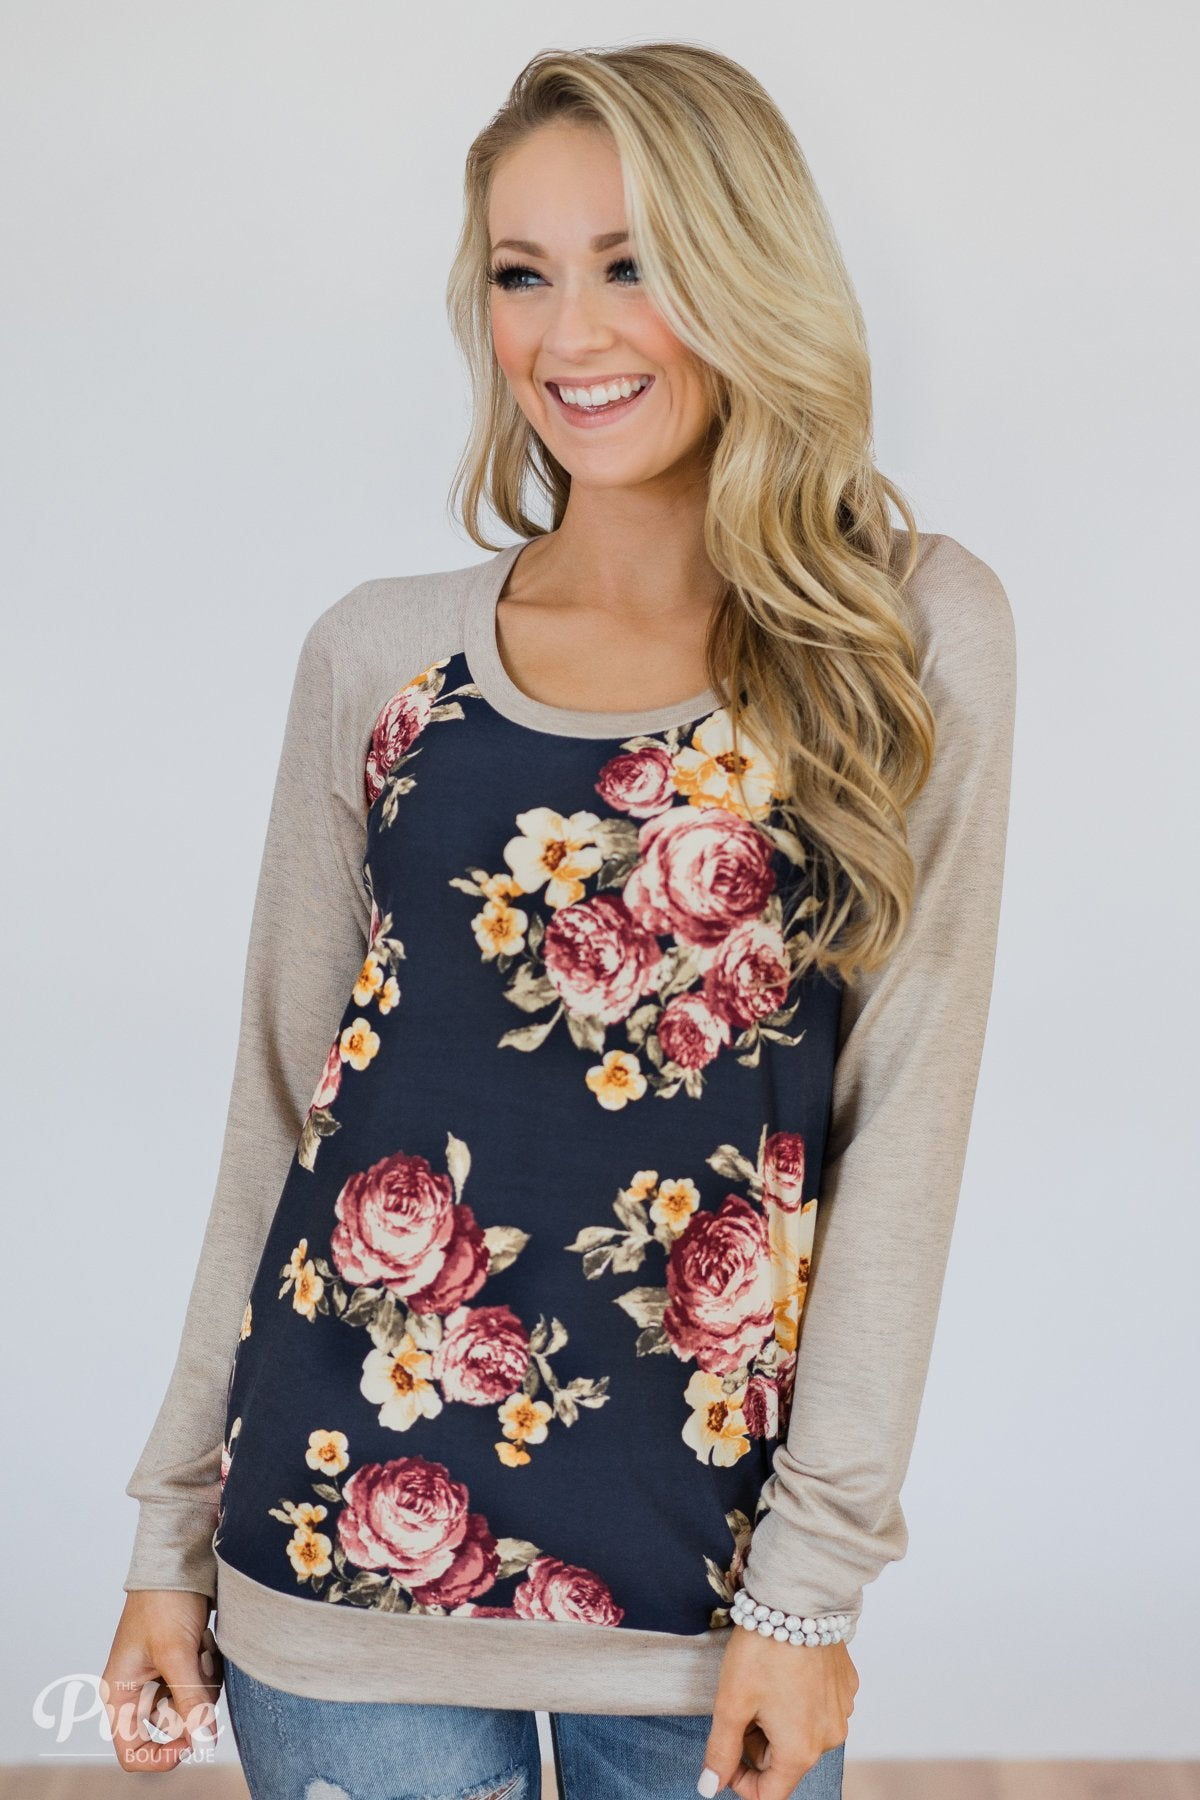 Always Room for Floral Top- Navy & Oatmeal